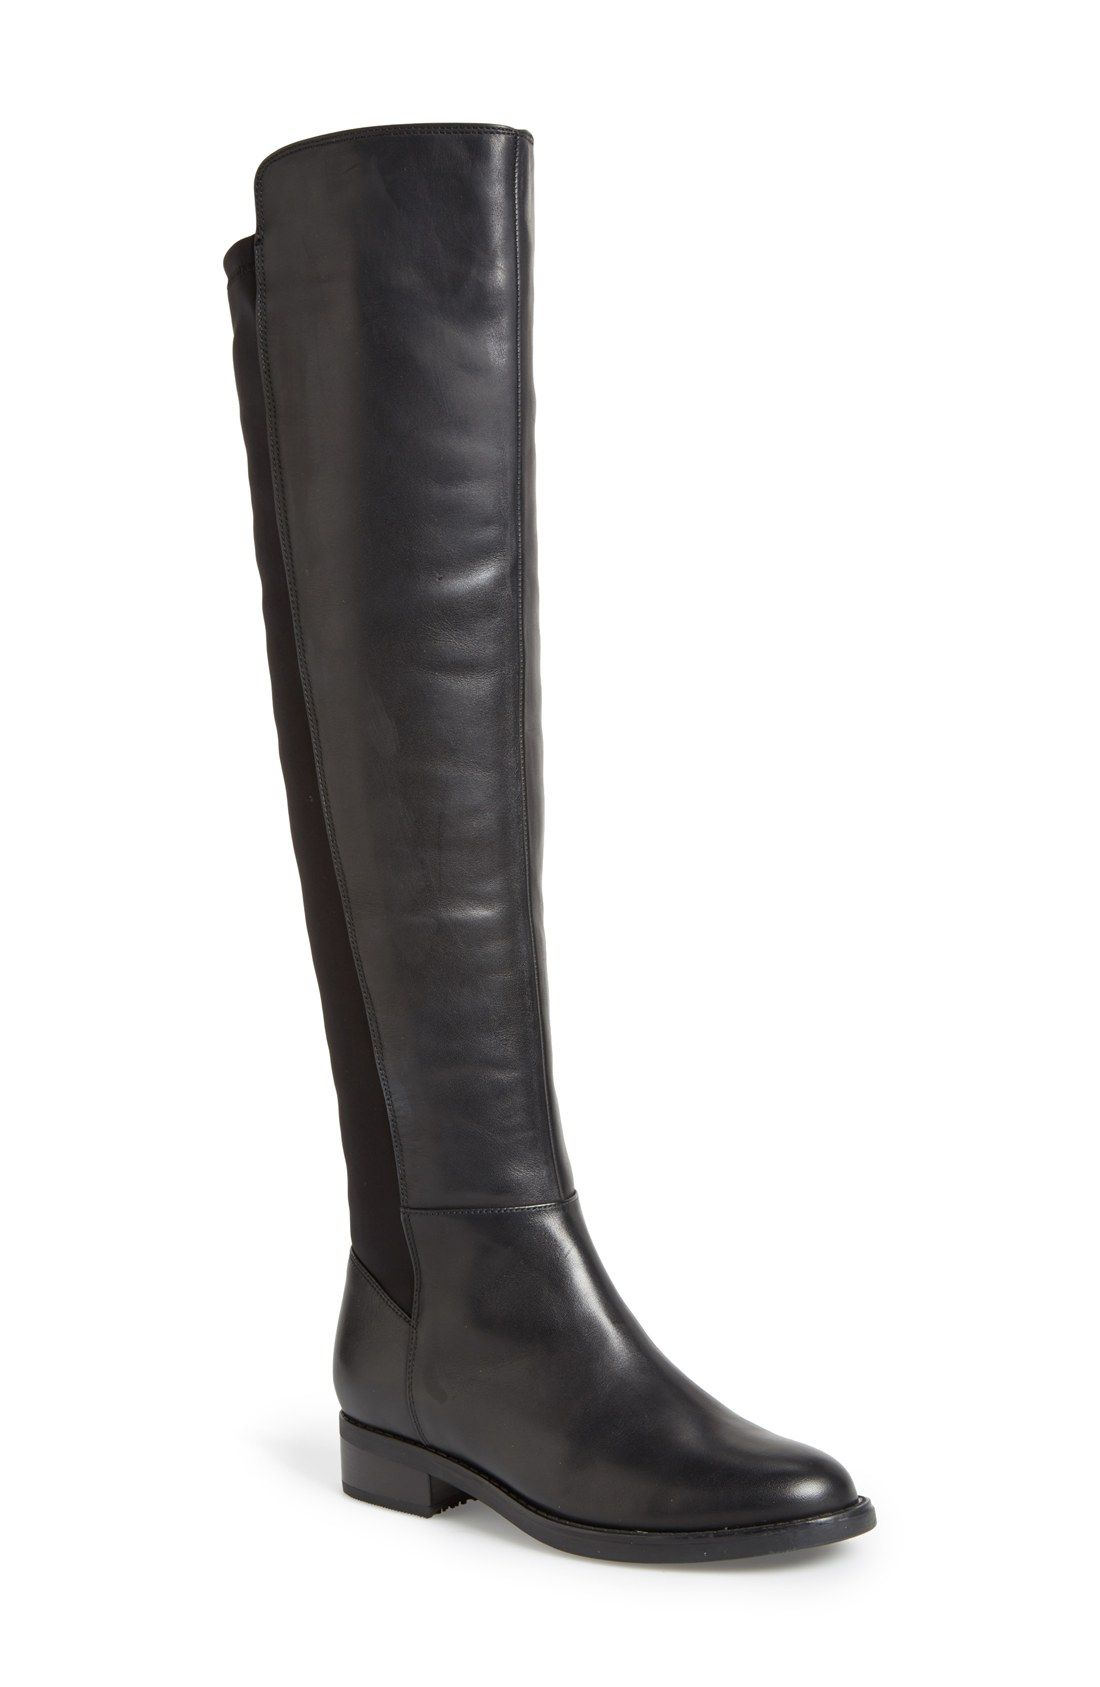 5800ab8d967 These over the knee waterproof boots are hot!